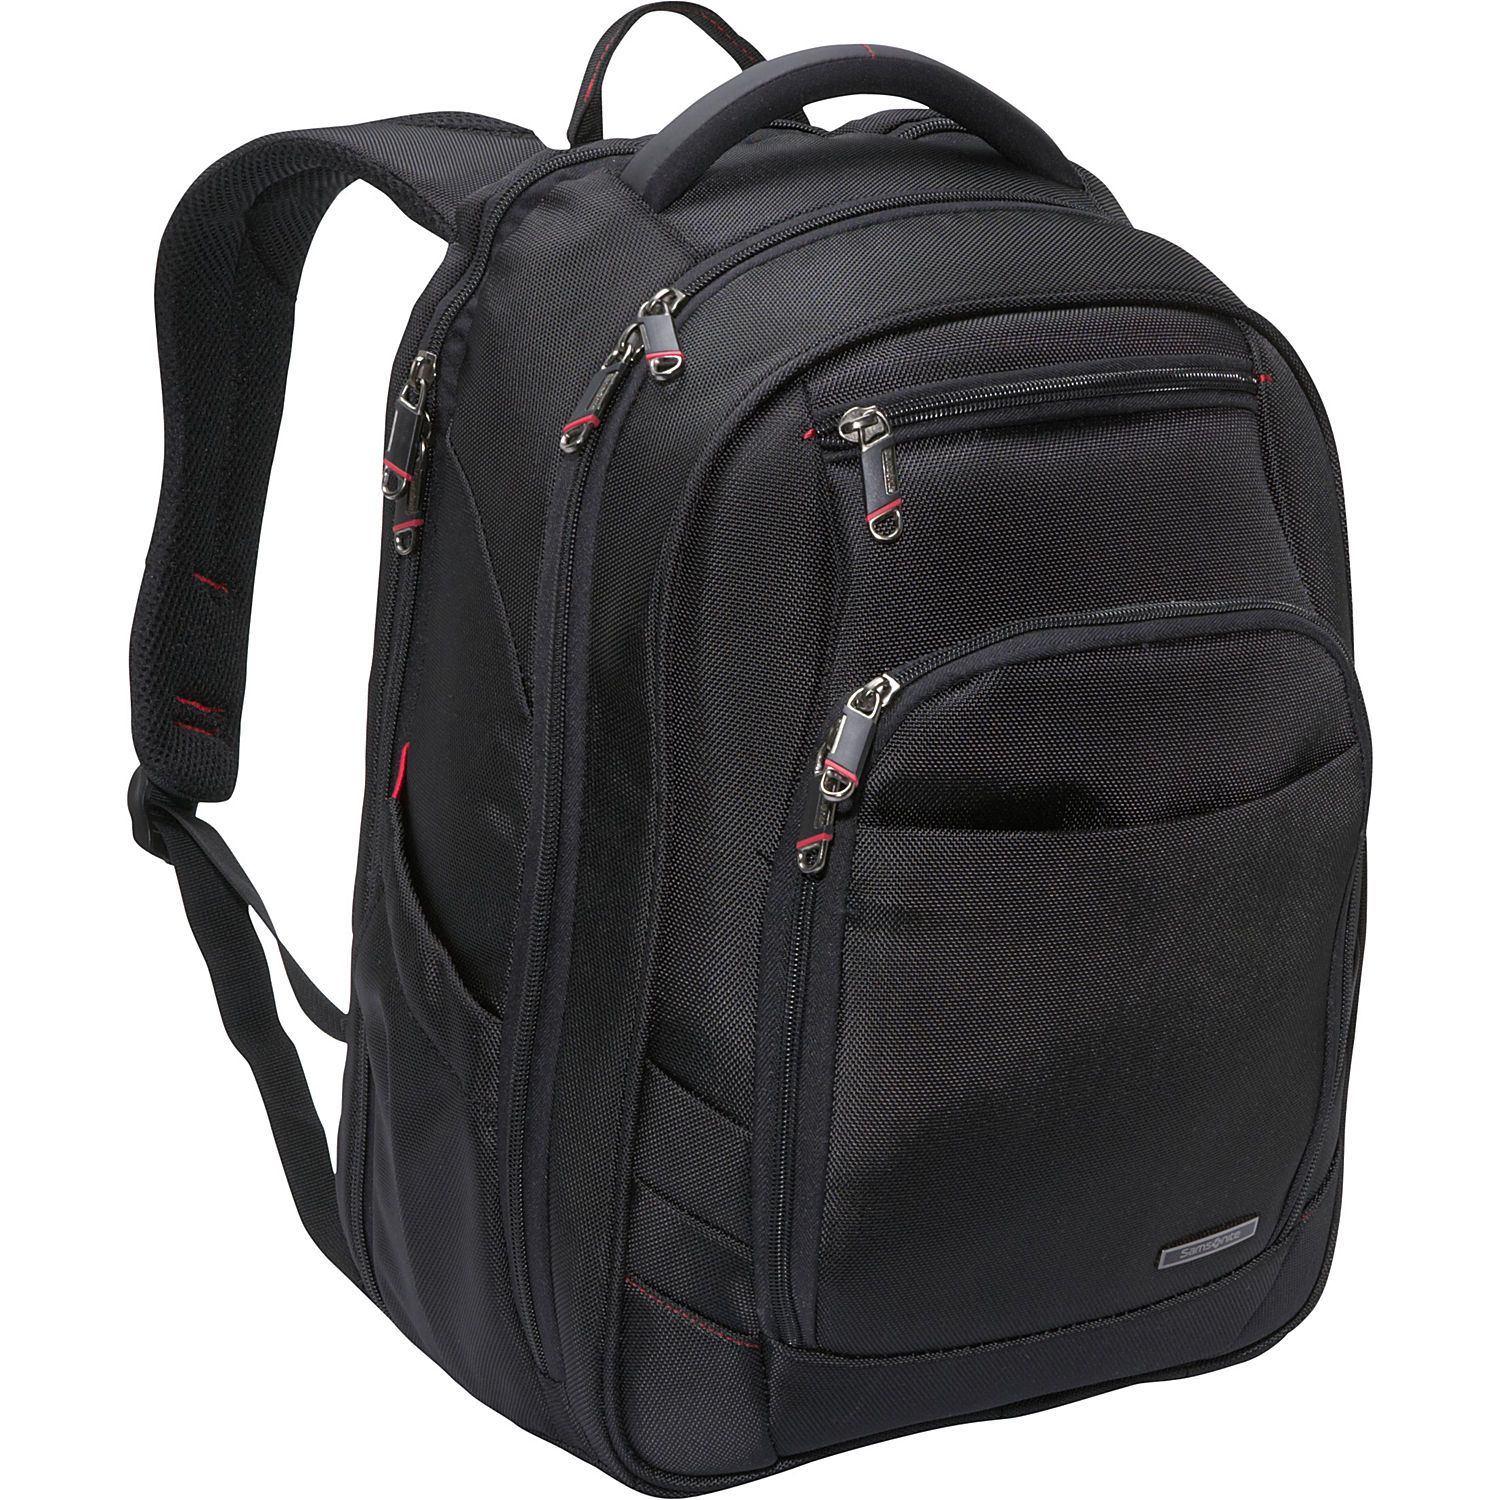 Xenon 2 Backpack - PFT/TSA | We, The o'jays and Bags